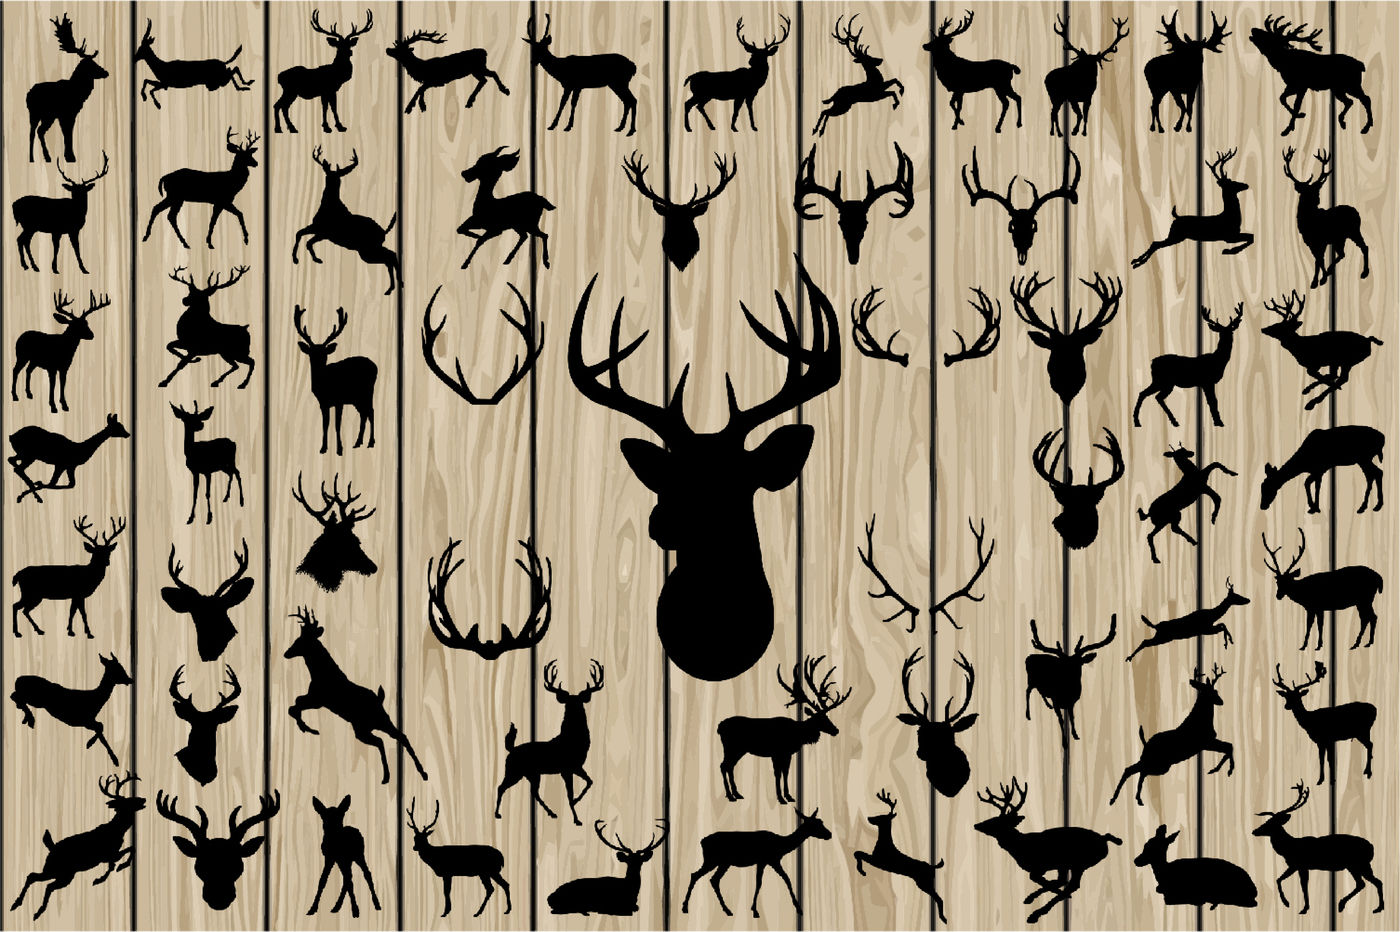 60 Deer Svg Deer Vector Deer Silhouette Clipart Cutting File